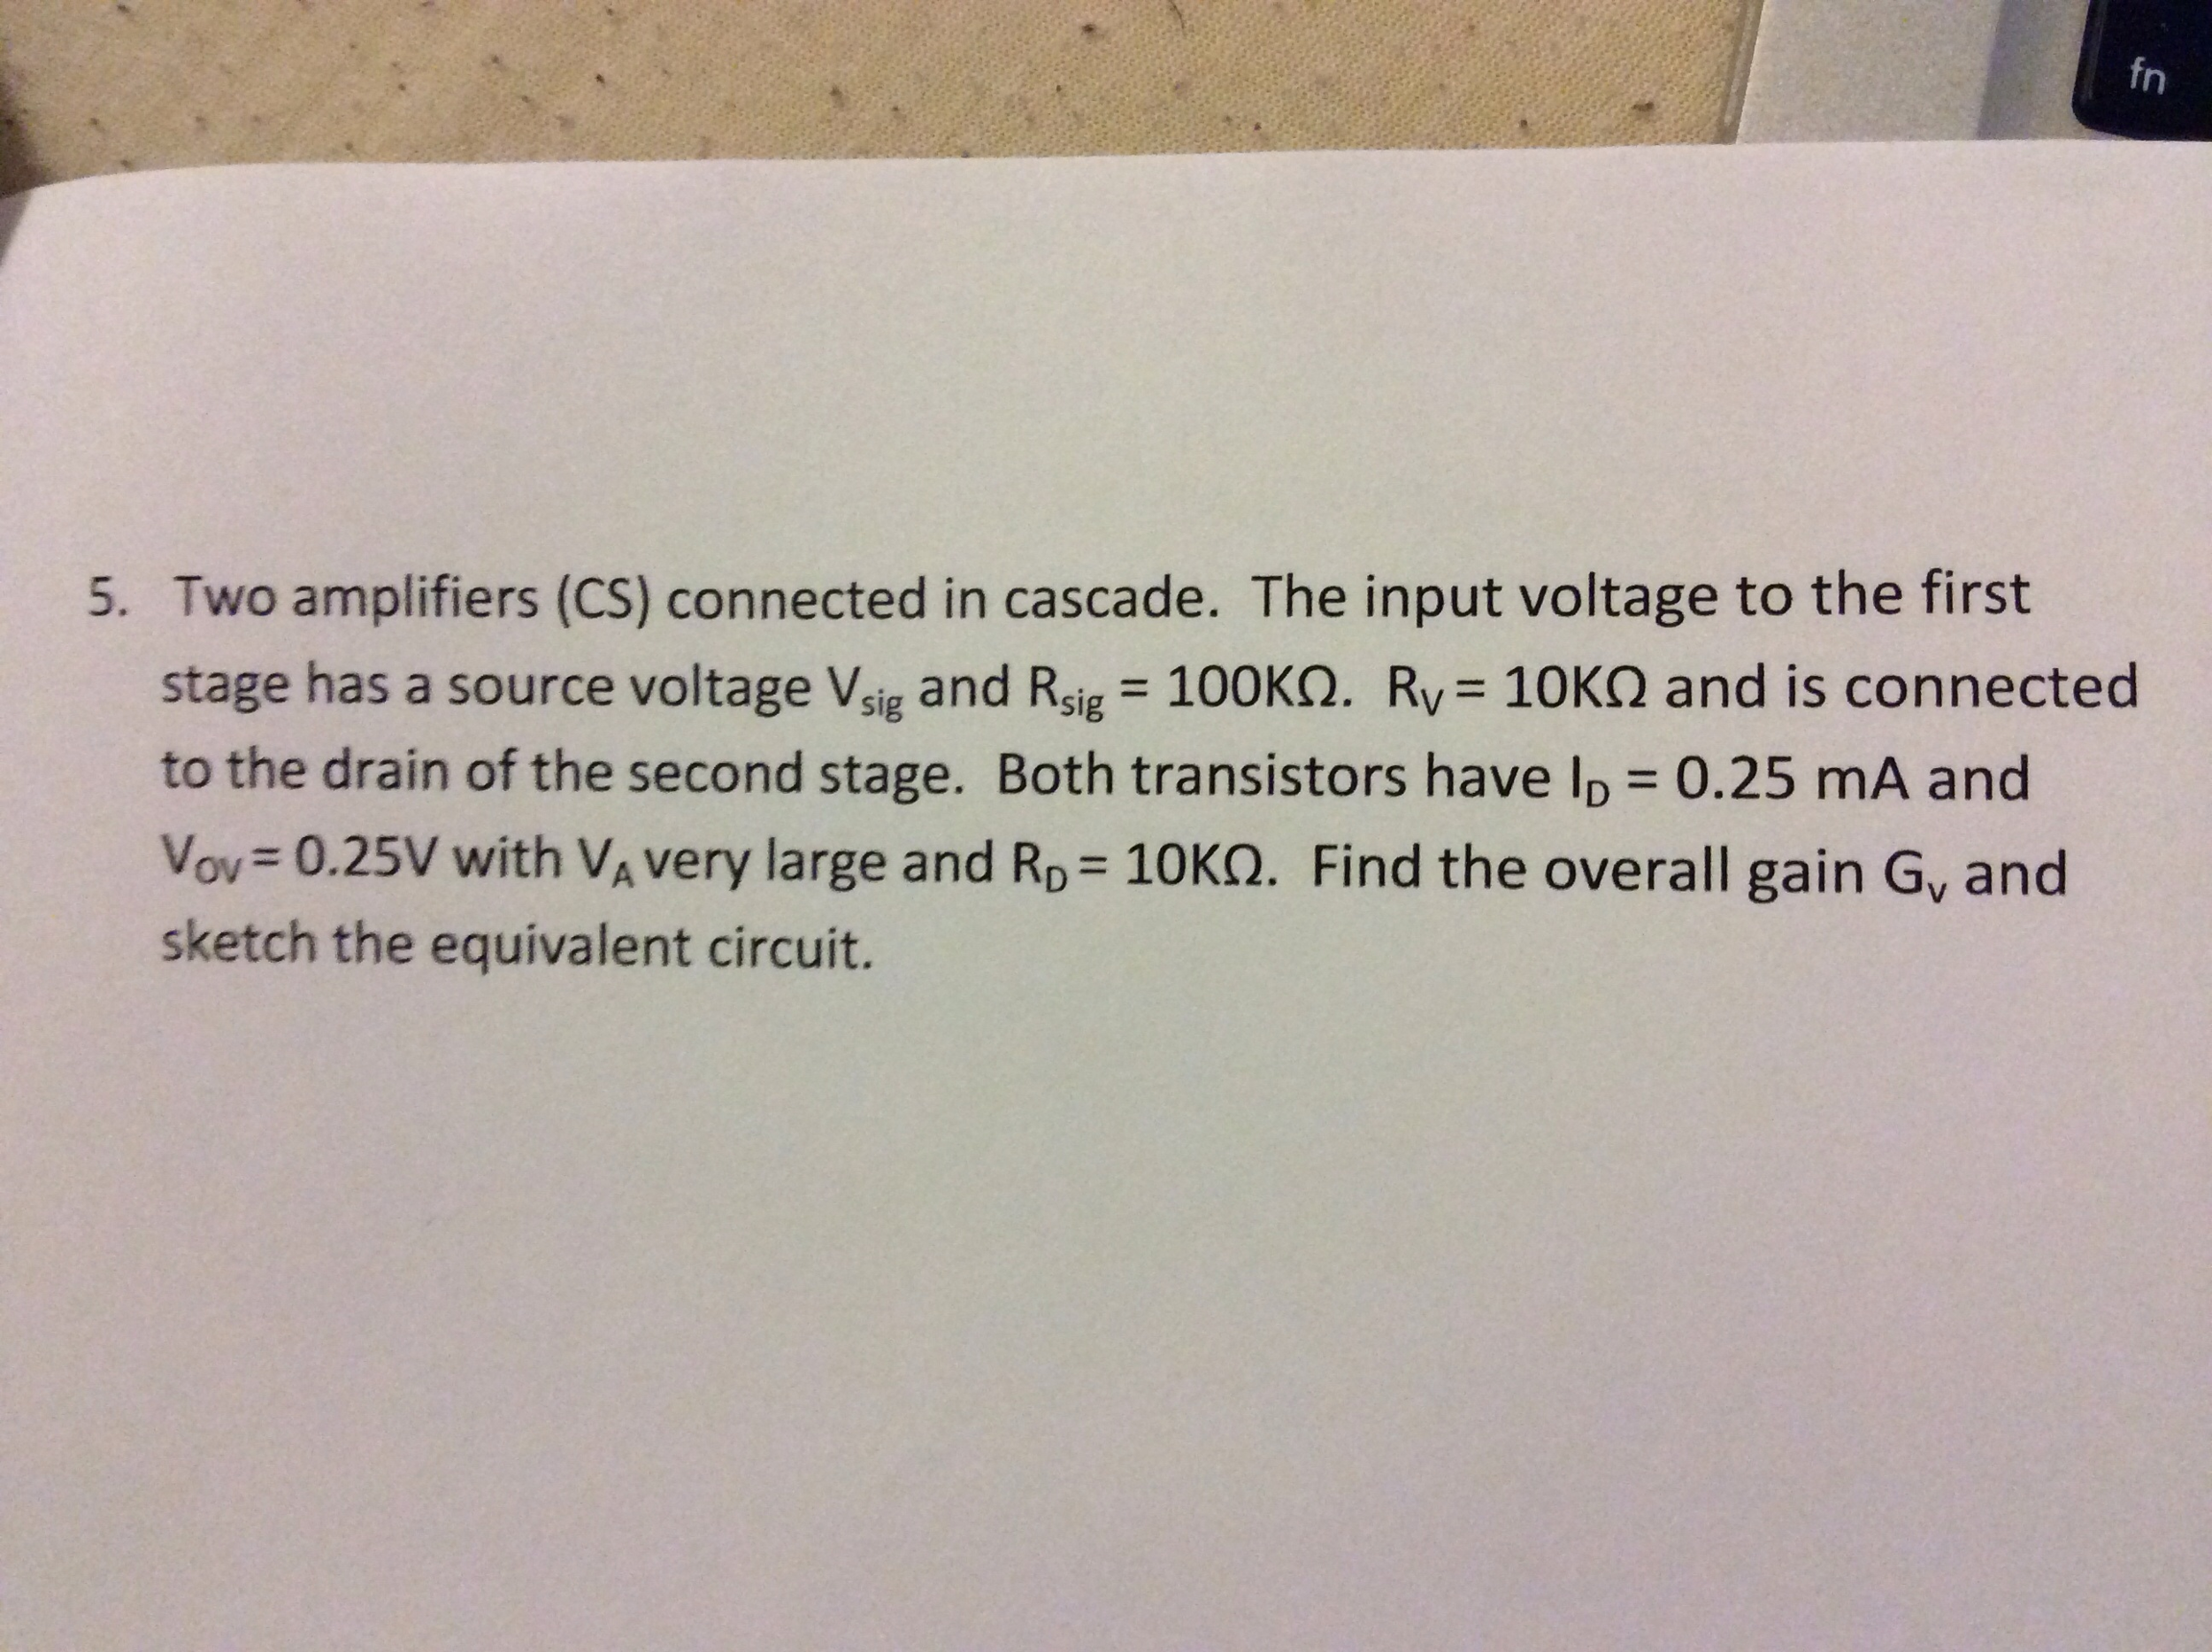 Two amplifiers (CS) connected in cascade. The inpu